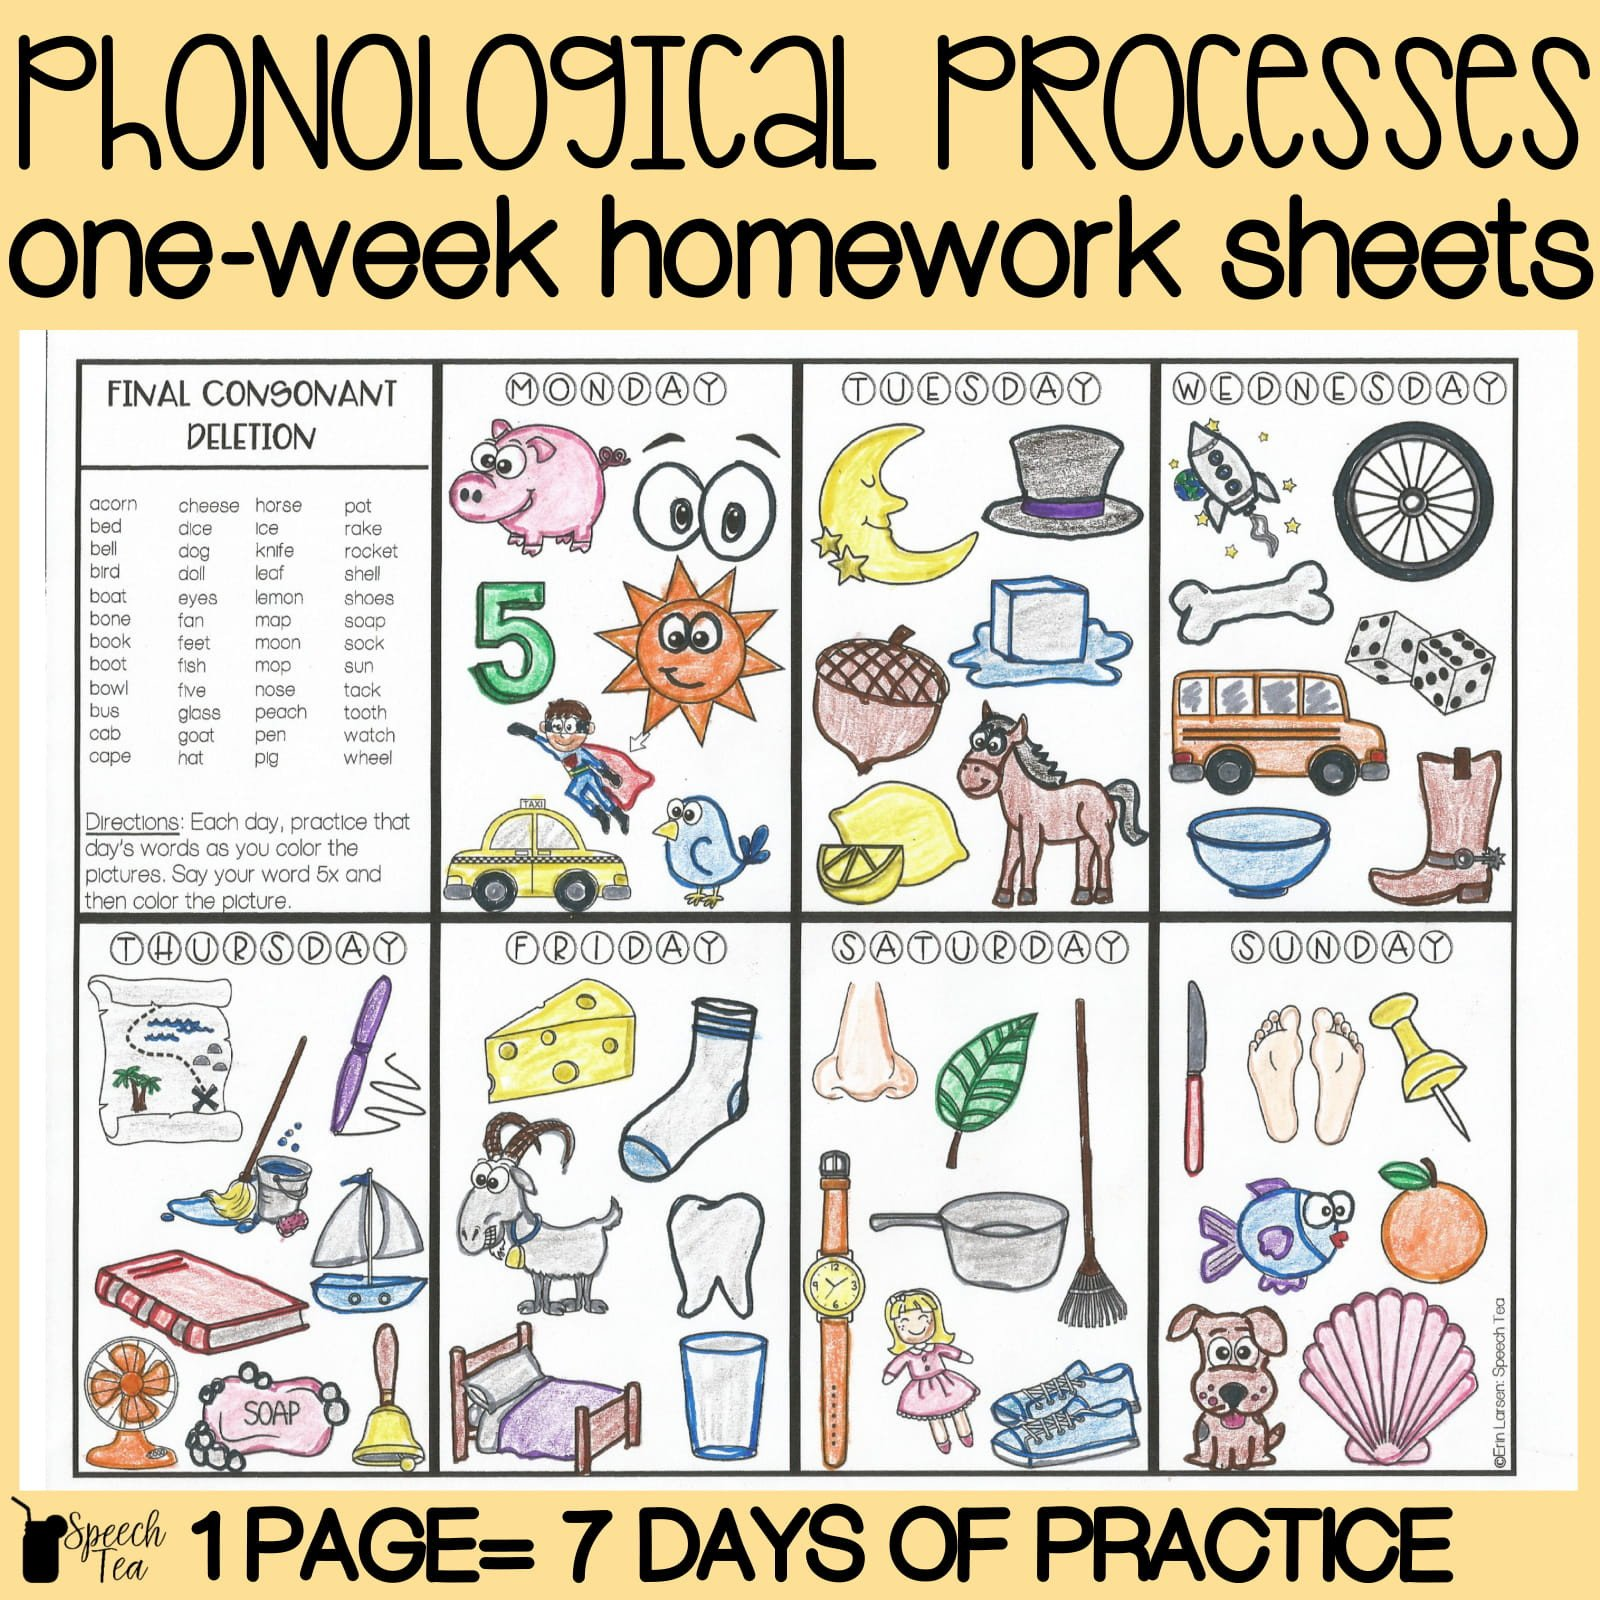 Final Consonant Deletion Worksheet Phonological Processes Homework Color Sheets